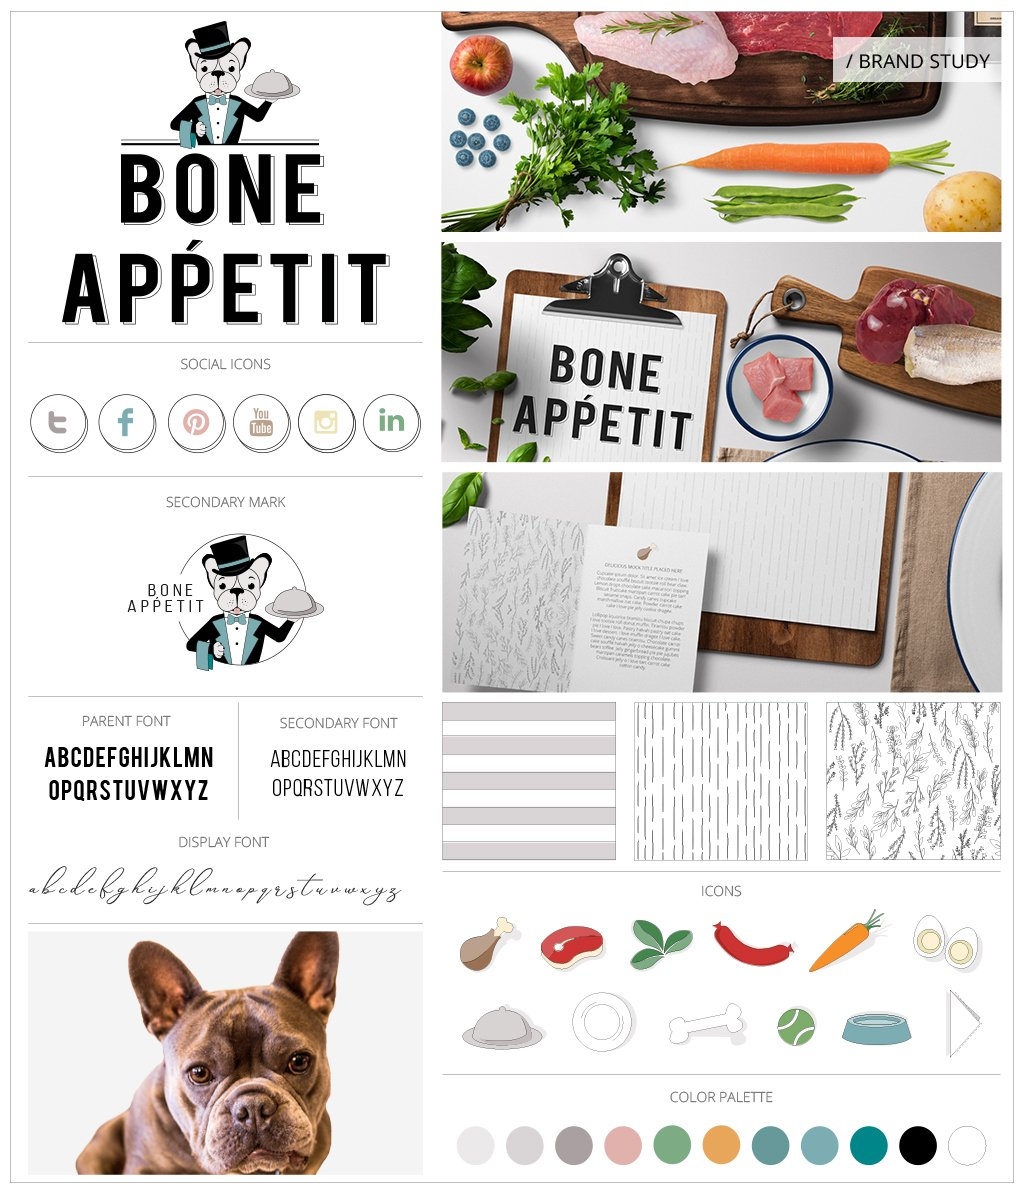 Bone-Appetit-Brand-Study-by-Sniff-Design-Studio